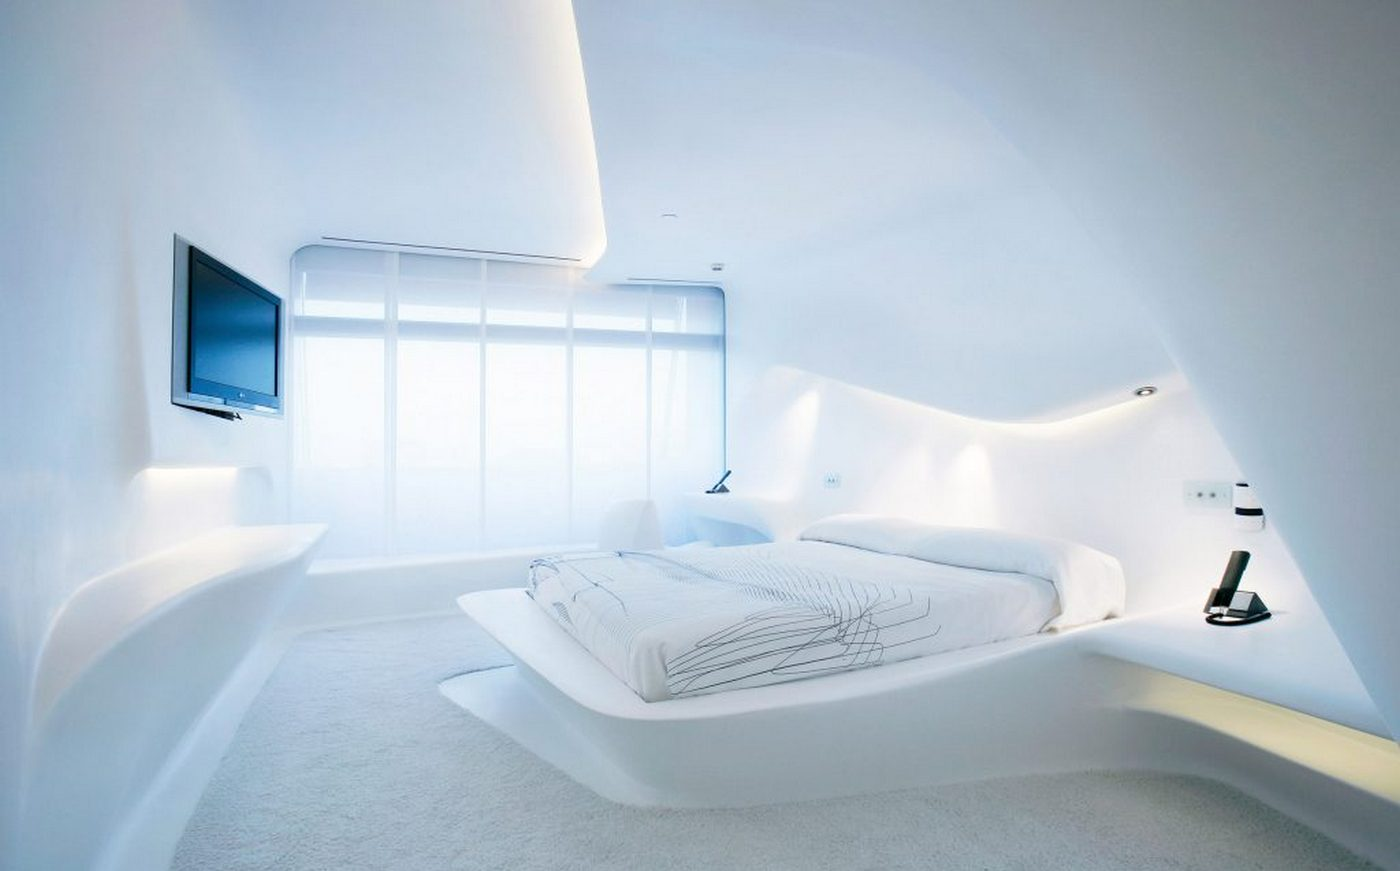 Moby would rather sleep in a dumpster than a Zaha Hadid hotel room -